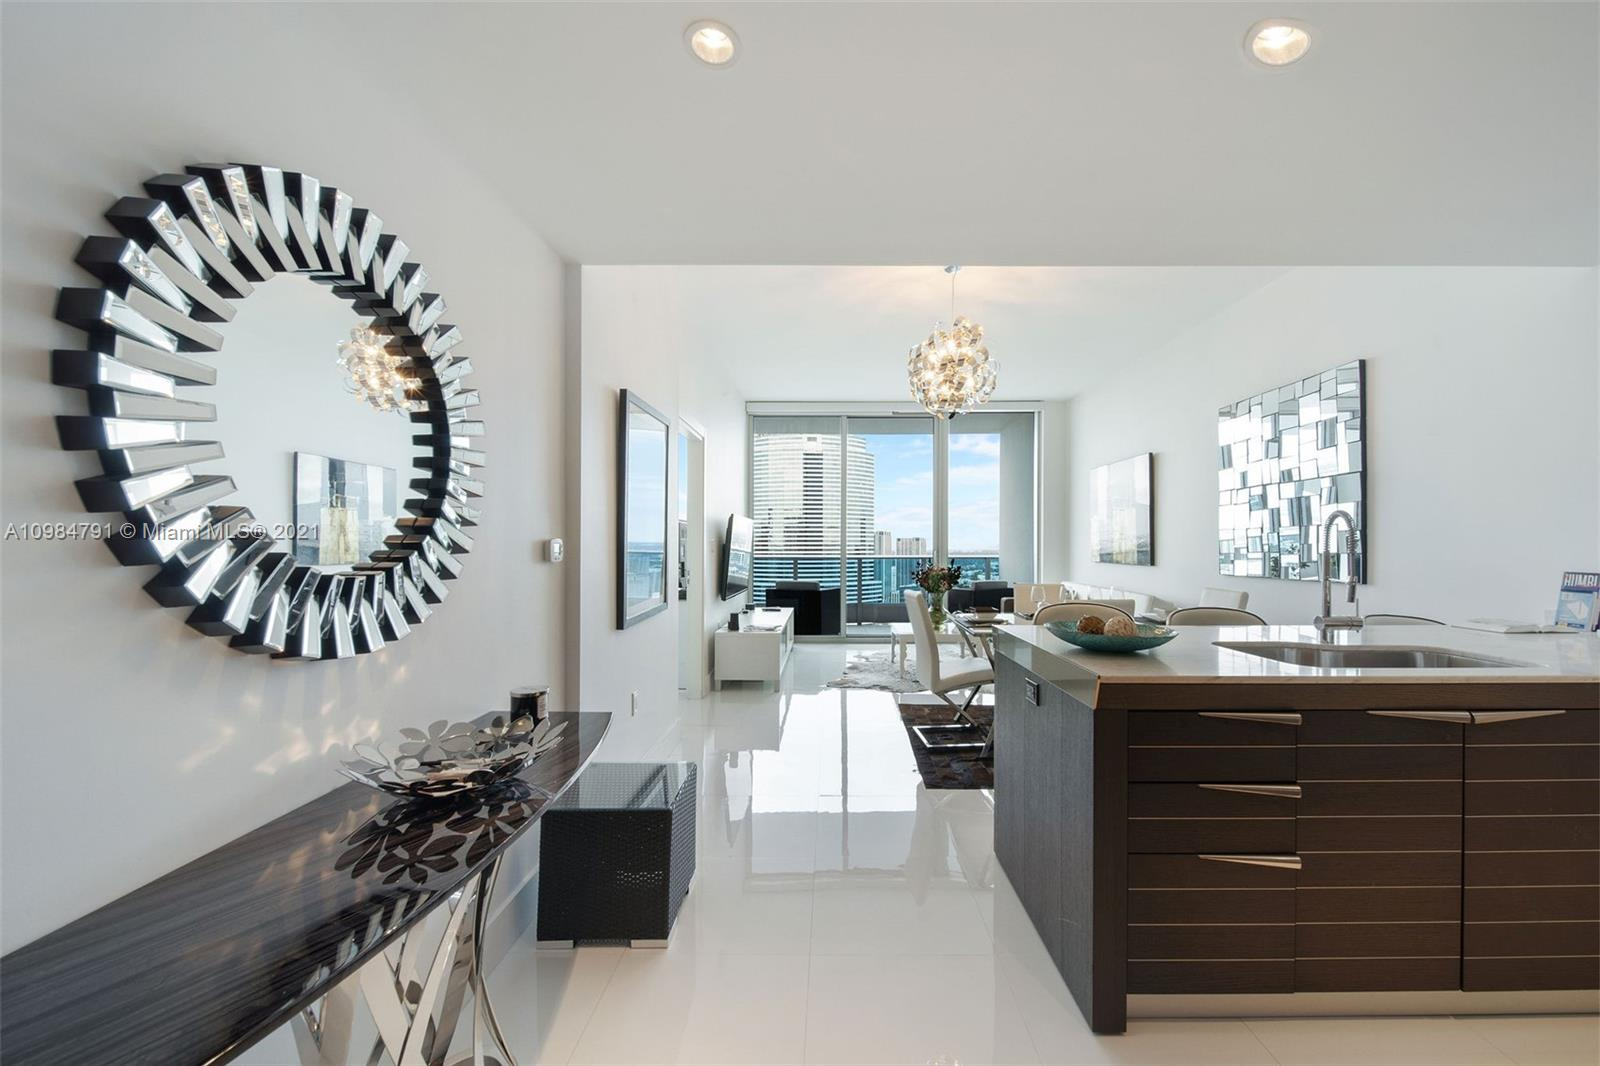 Enjoy The Privilege To Be A Resident At The Luxury Epic Condominium. This beautifully done 1 Bed / 1.5 Bath with Spectacular Views Of The City & River. Building Includes Top Of The Line Amenities. Three Pools, Sauna, Jacuzzi, State-Of-The Art Exercise Room, Restaurant. Close To Aa Arena & Bayside. Parking, Basic Cable and High Speed Internet included.